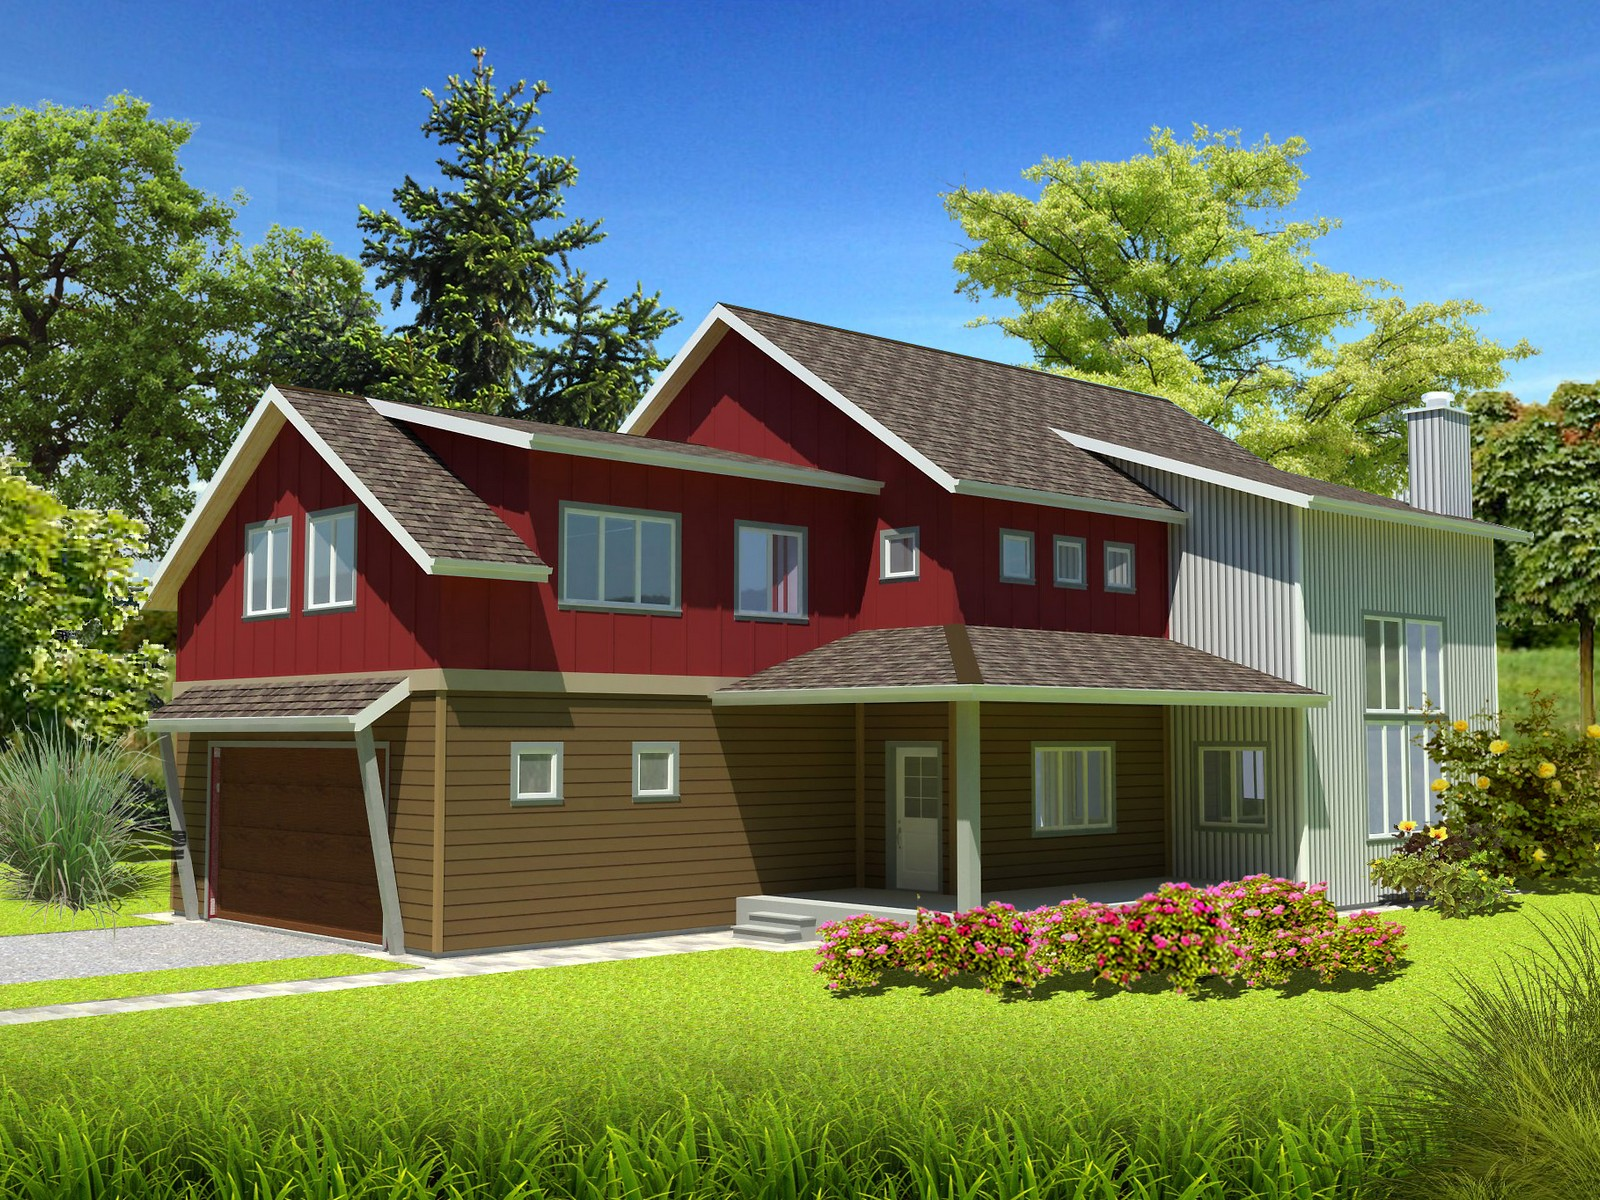 단독 가정 주택 용 매매 에 Big Sky's Ramshorn Custom Home - To Be Built 90 Primrose Big Sky, 몬타나 59716 미국